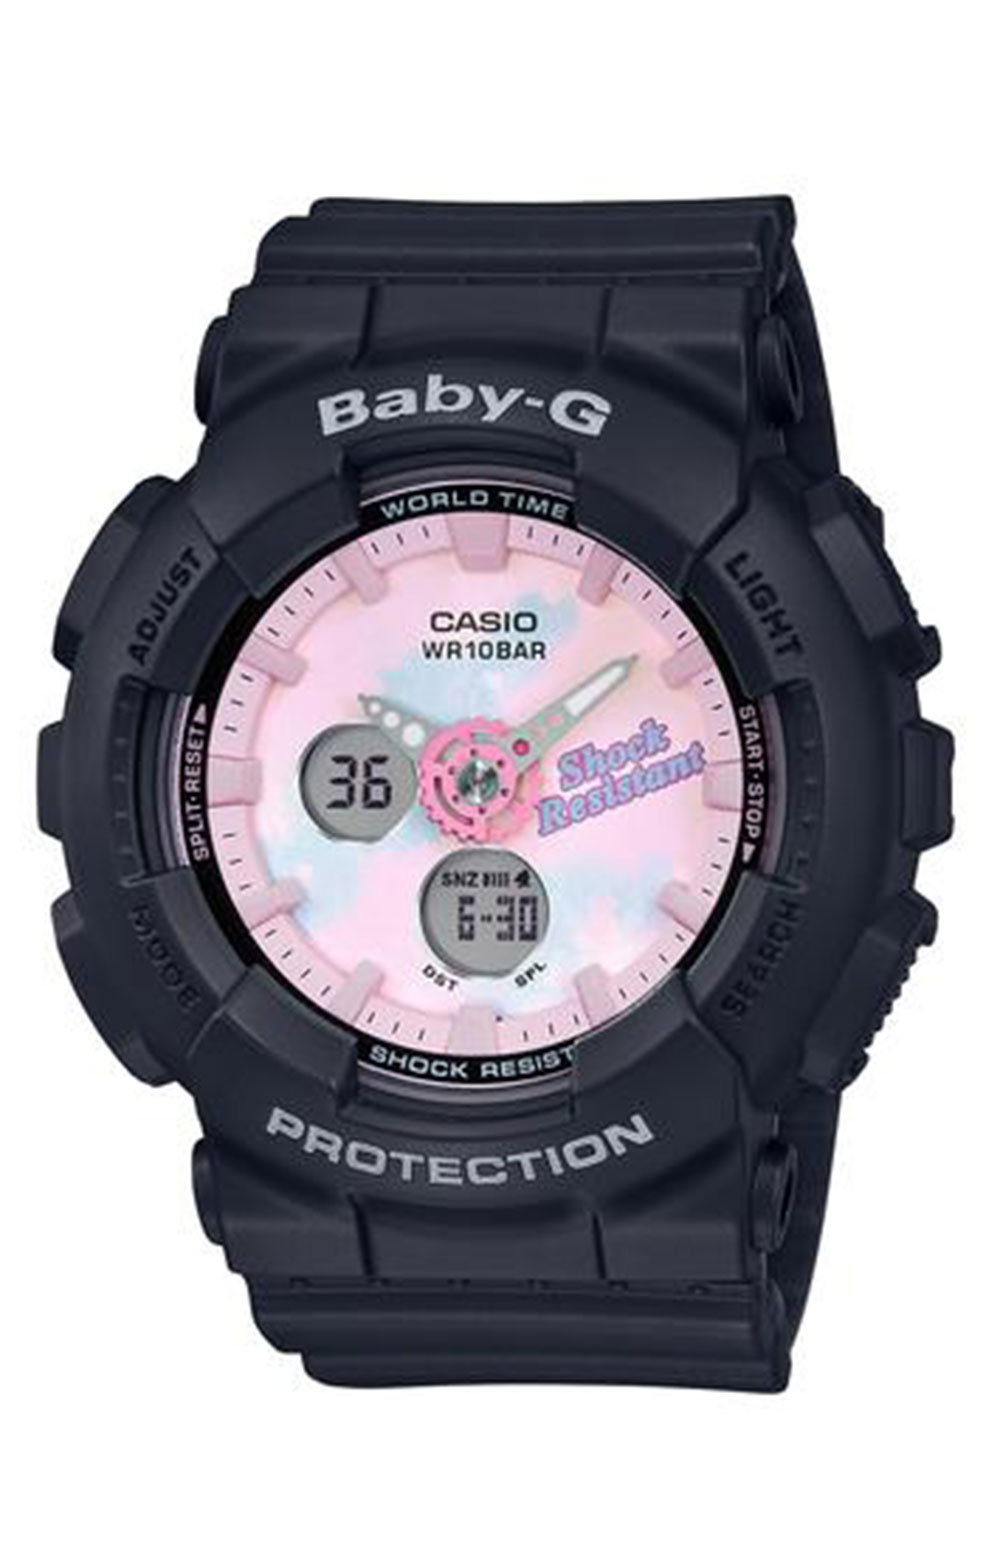 Baby-G BA120T-1A Watch - Black 1